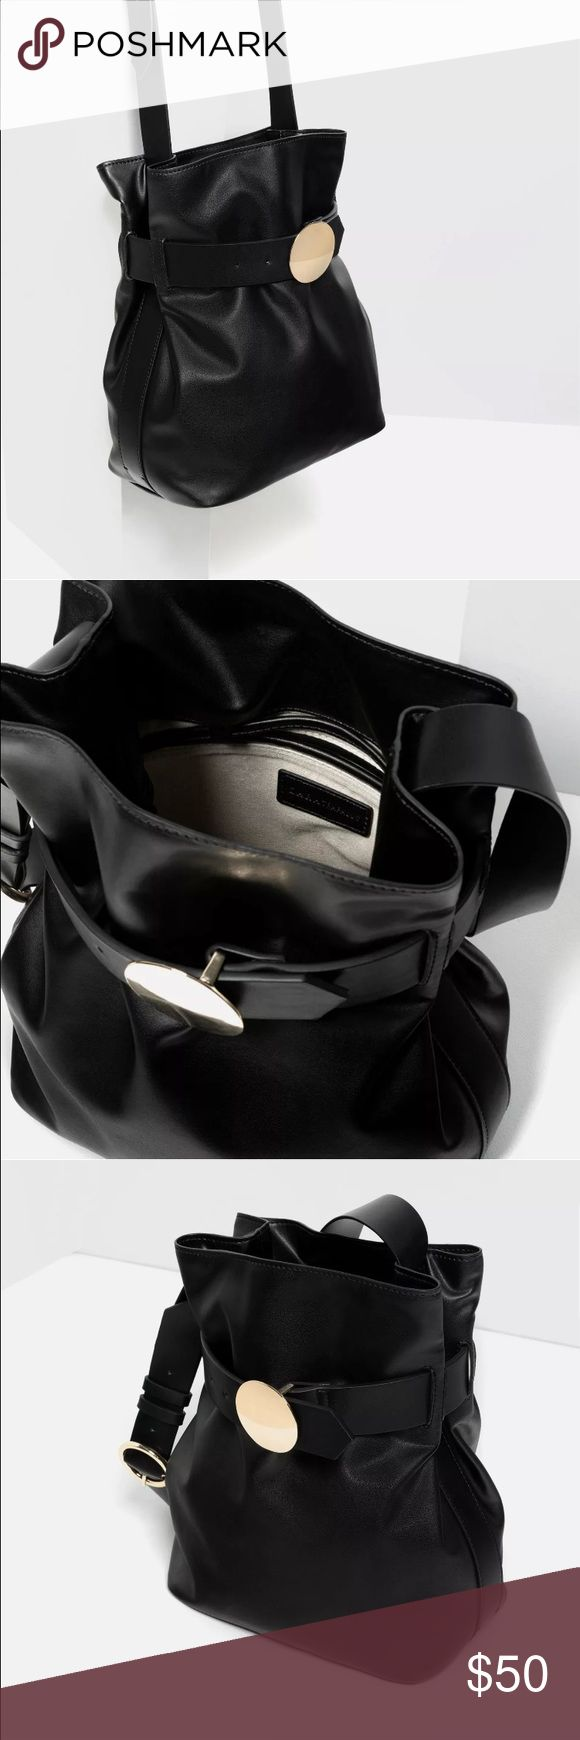 Zara bag ZARA brooch clasp bucket bag  - Brand New with Tags  black with golden brooch fully lined, with inner pocket adjustable strap  will be delivered with zara white dust cover bag  size: height 31cm / width 27cm / depth 17cm   sold out in stores and online Zara Bags